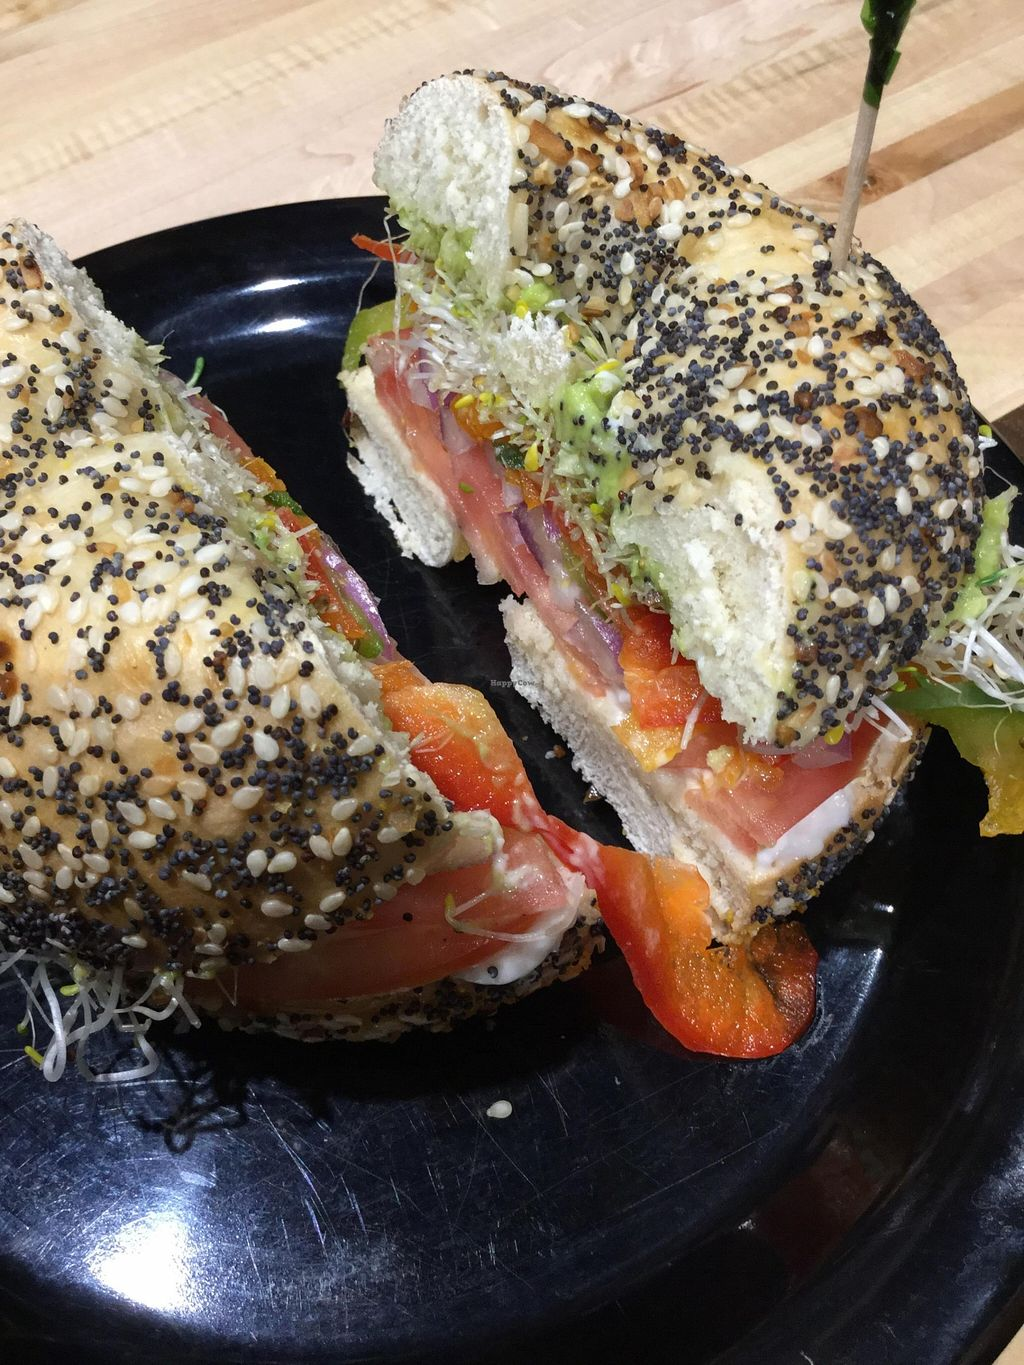 """Photo of The Good Food Store  by <a href=""""/members/profile/J%20and%20J"""">J and J</a> <br/>Make your own sandwich <br/> February 27, 2016  - <a href='/contact/abuse/image/2185/137999'>Report</a>"""